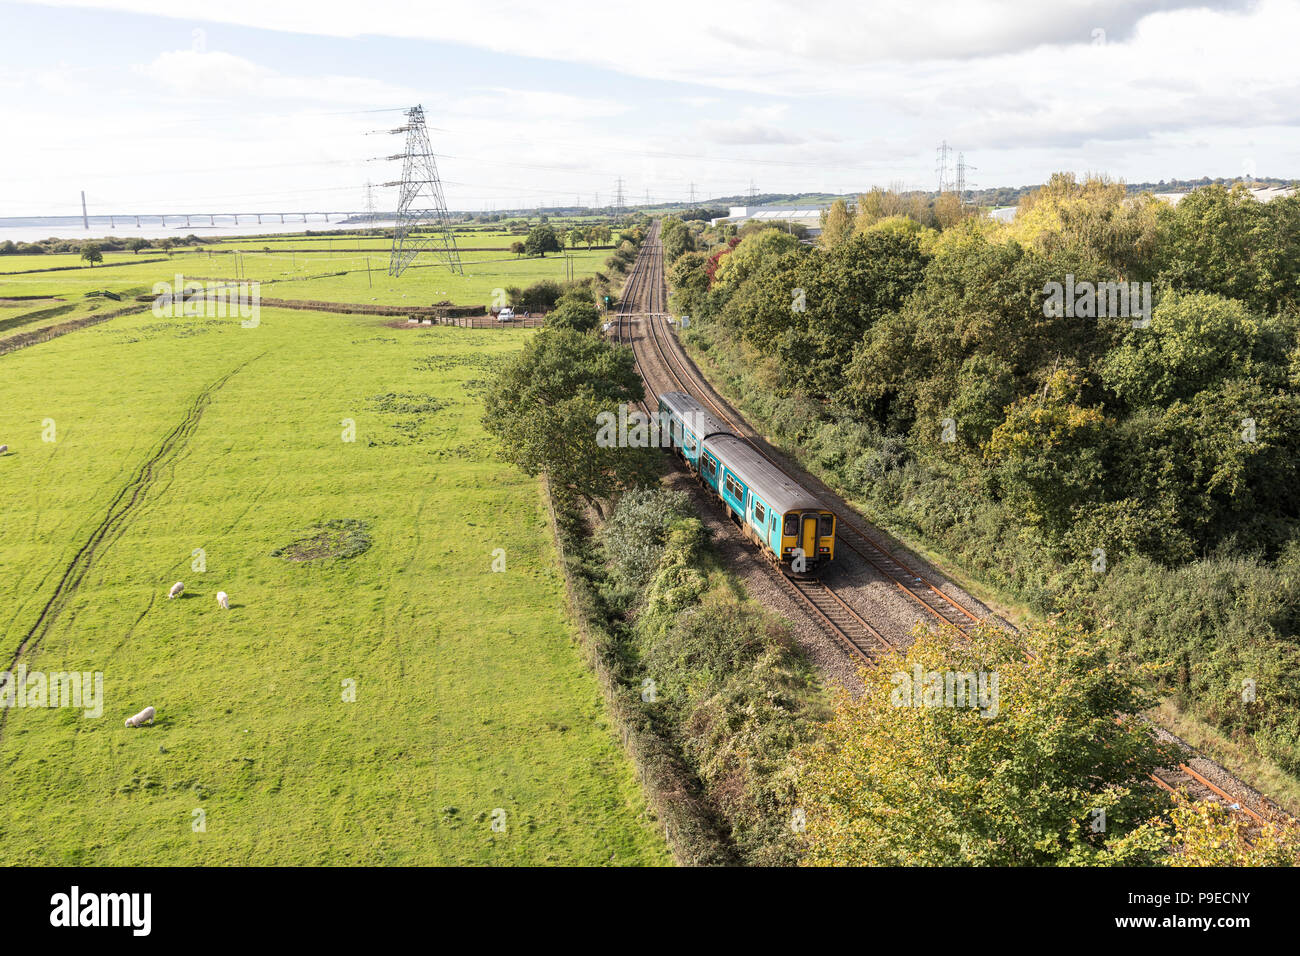 Railway alongside river Severn with road bridge in distance at Chepstow, Wales, UK - Stock Image